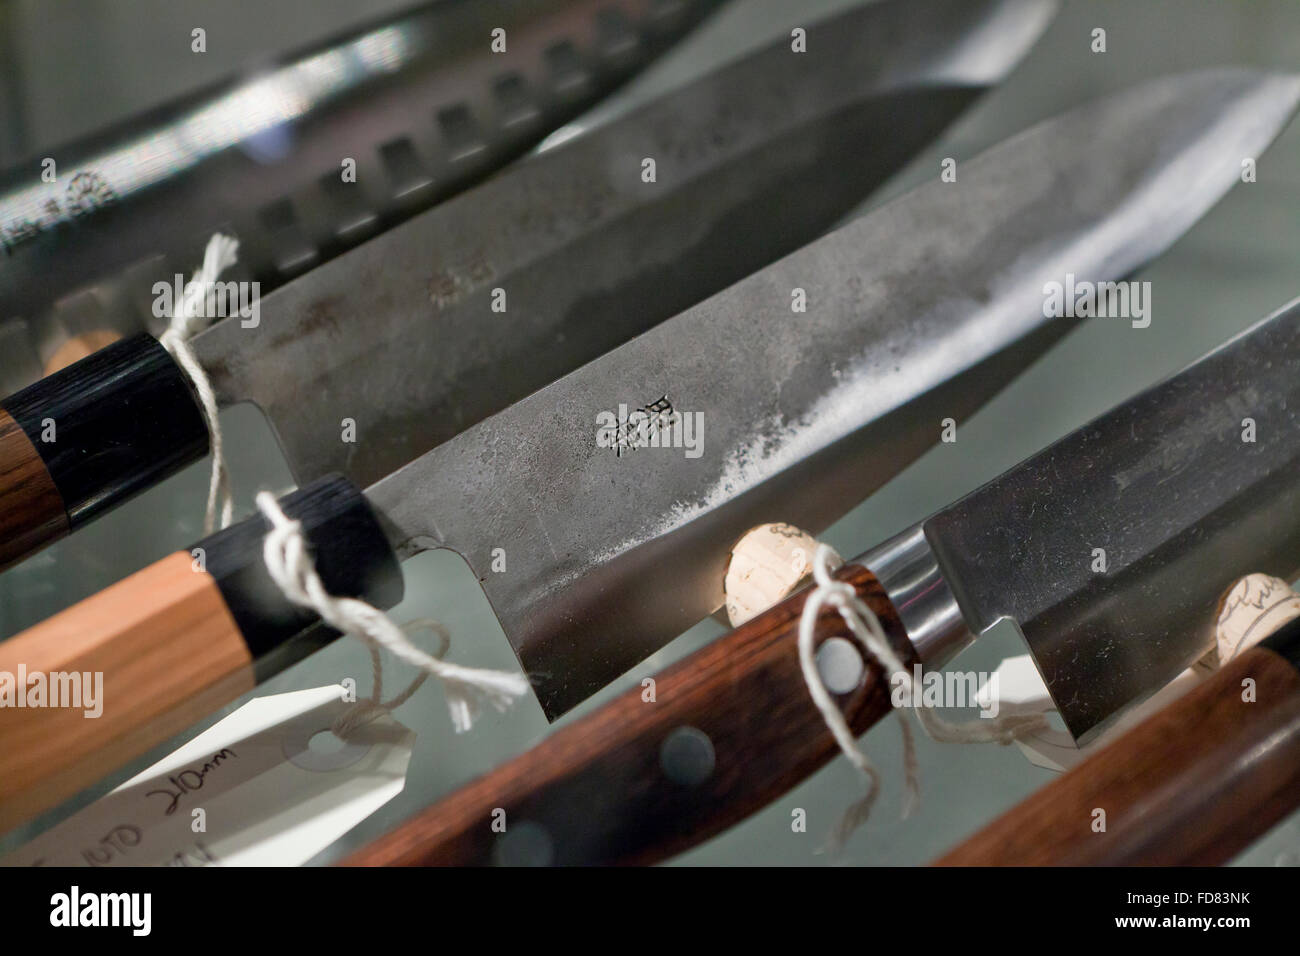 Hand crafted Japanese kitchen knives on display case - Stock Image